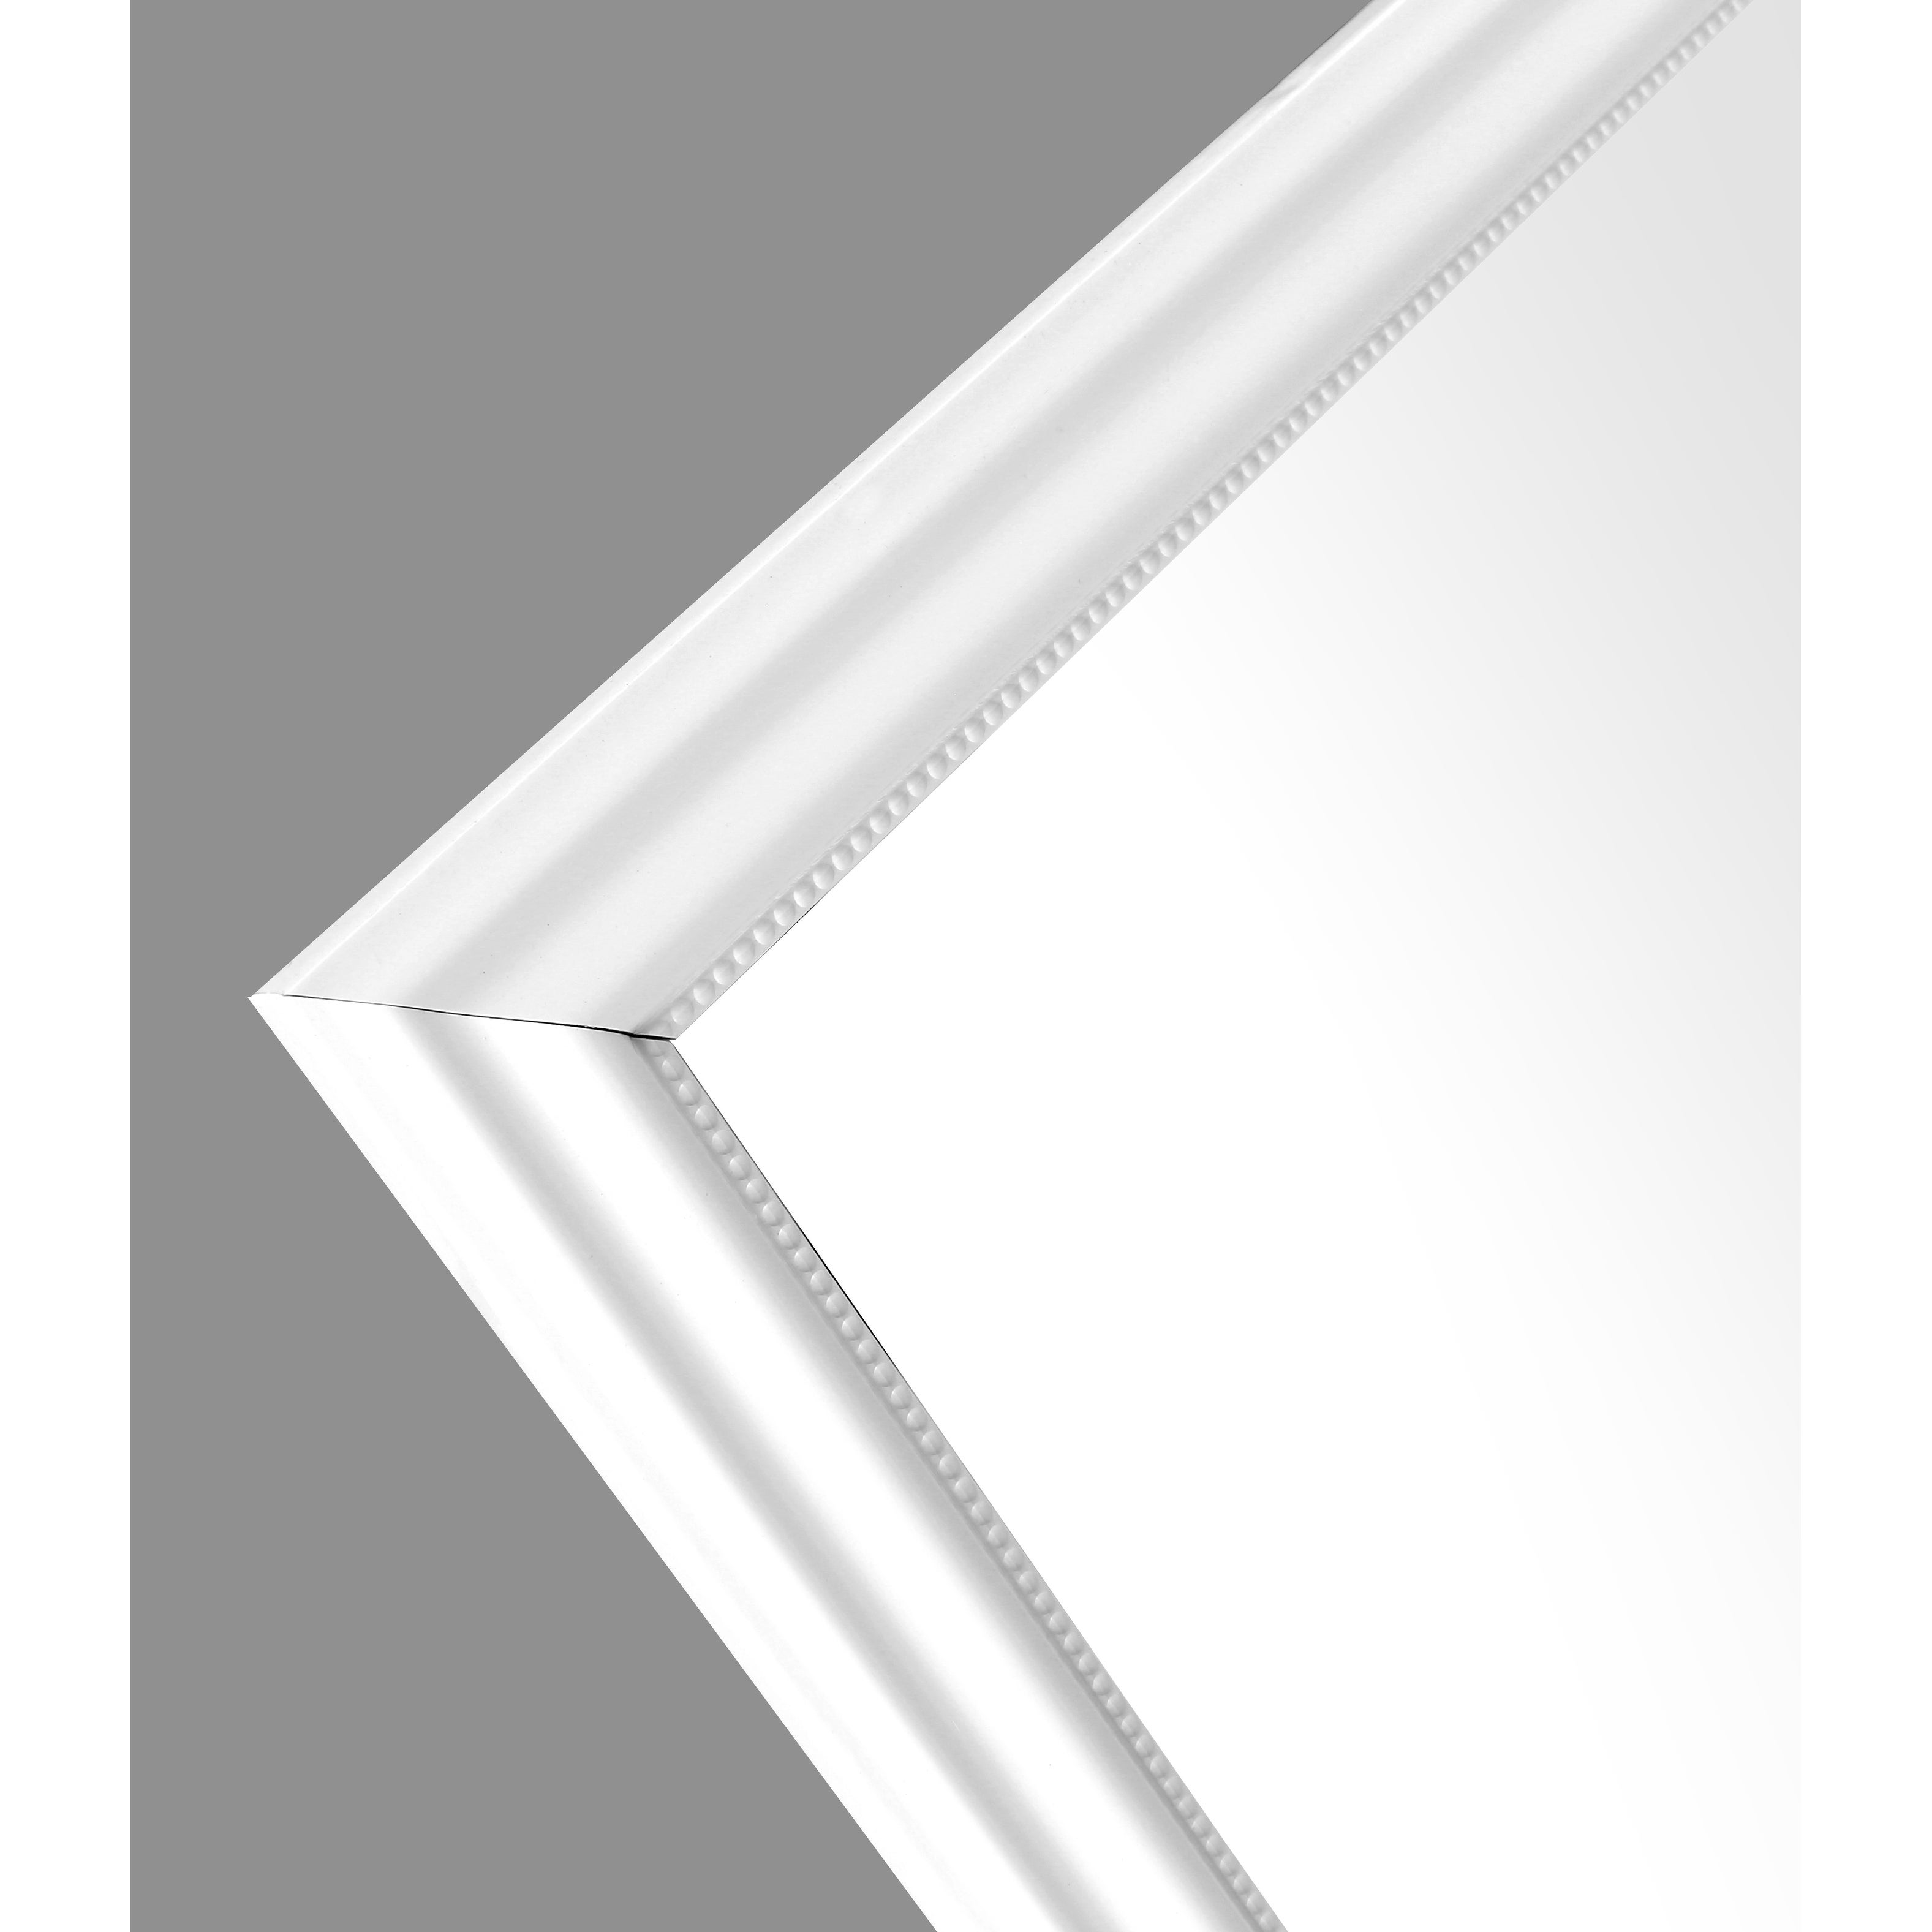 Shop 50x14 Inch White Framed Over The Door Mirror Full Length Hanging Wall Mirrors For Entryway Bedroom Rectangle Large Long Overstock 31893969